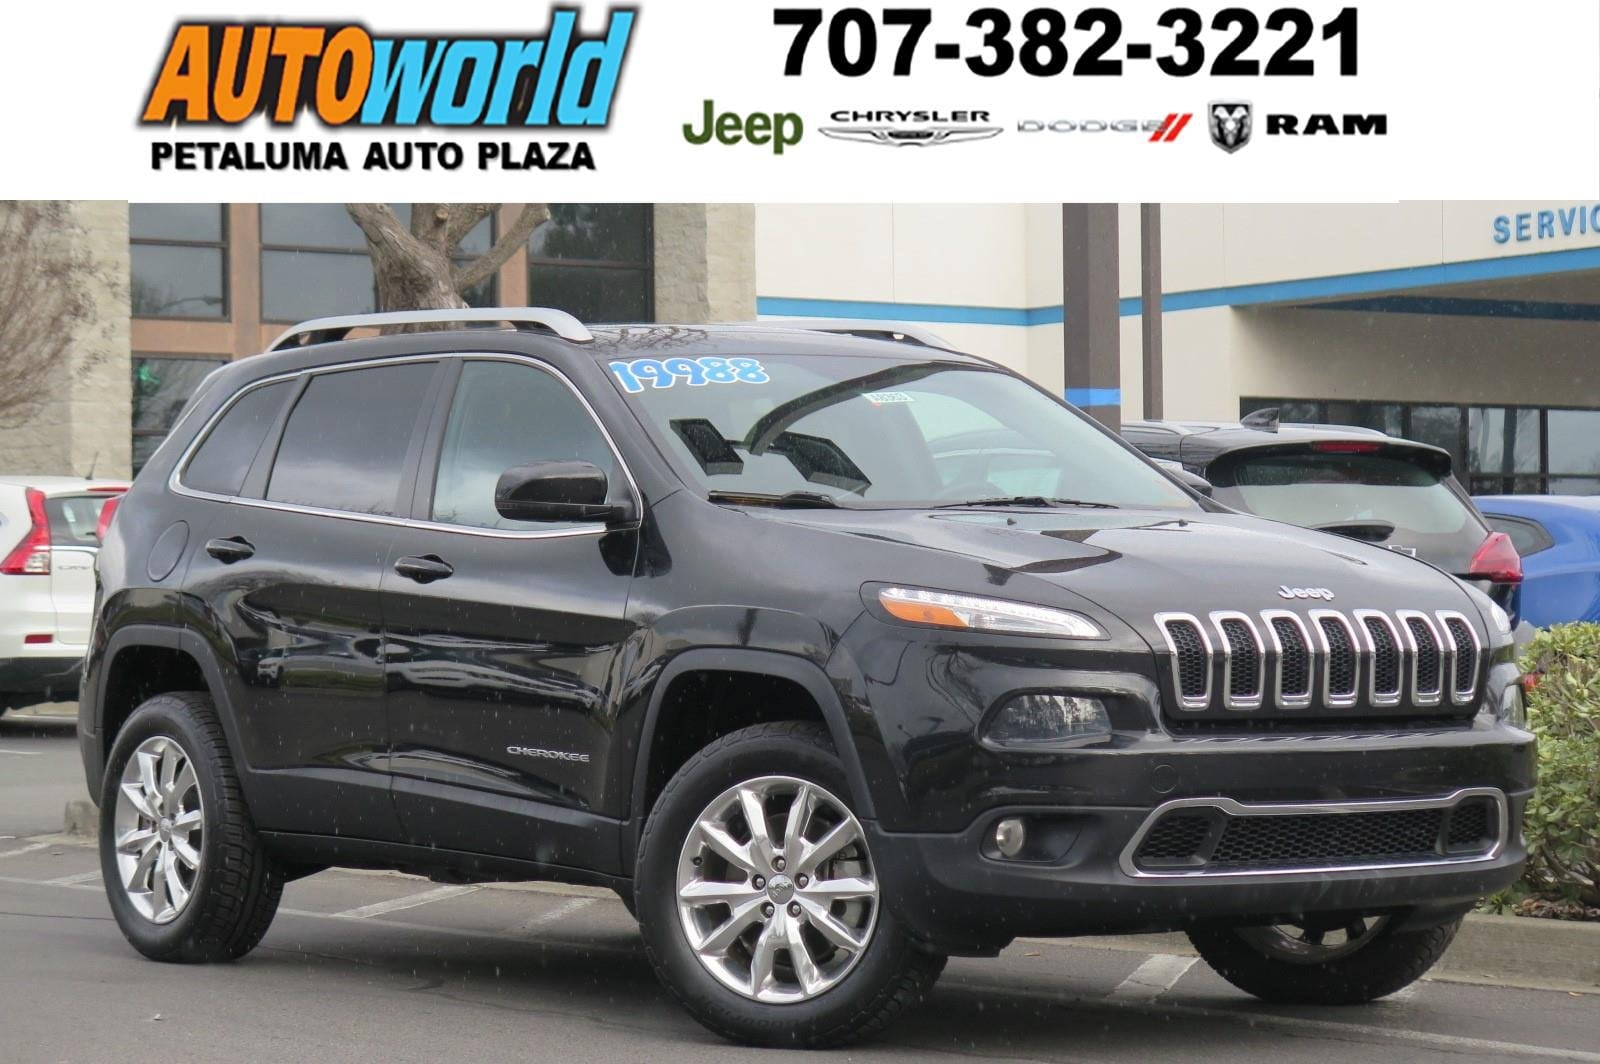 2014 Jeep Cherokee Limited 4WD  Limited